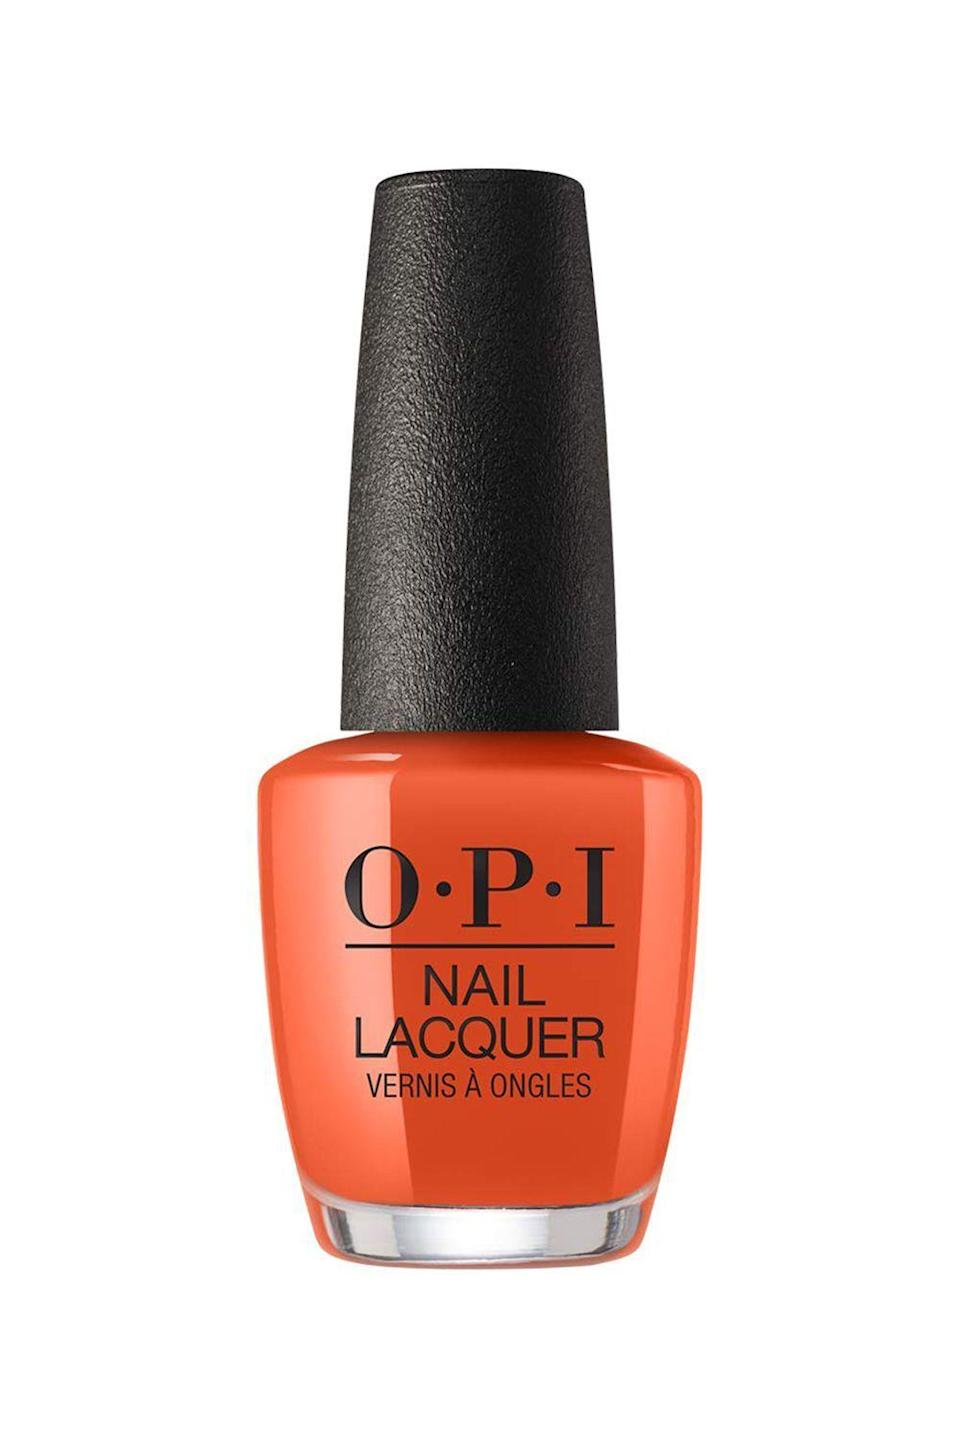 """<p><strong>OPI Nail Laquer in Suzi Needs a Loch-Smith</strong></p><p>ulta.com</p><p><strong>$100.00</strong></p><p><a href=""""https://go.redirectingat.com?id=74968X1596630&url=https%3A%2F%2Fwww.ulta.com%2Fscotland-nail-lacquer-collection%3FproductId%3Dpimprod2008446&sref=https%3A%2F%2Fwww.marieclaire.com%2Fbeauty%2Fg3965%2Ffall-nail-colors%2F"""" rel=""""nofollow noopener"""" target=""""_blank"""" data-ylk=""""slk:SHOP IT"""" class=""""link rapid-noclick-resp"""">SHOP IT</a></p><p>Nothing will feel more fall (and excusably basic) than wearing this apricot orange hue while sipping your pumpkin-spiced latte to match.</p>"""